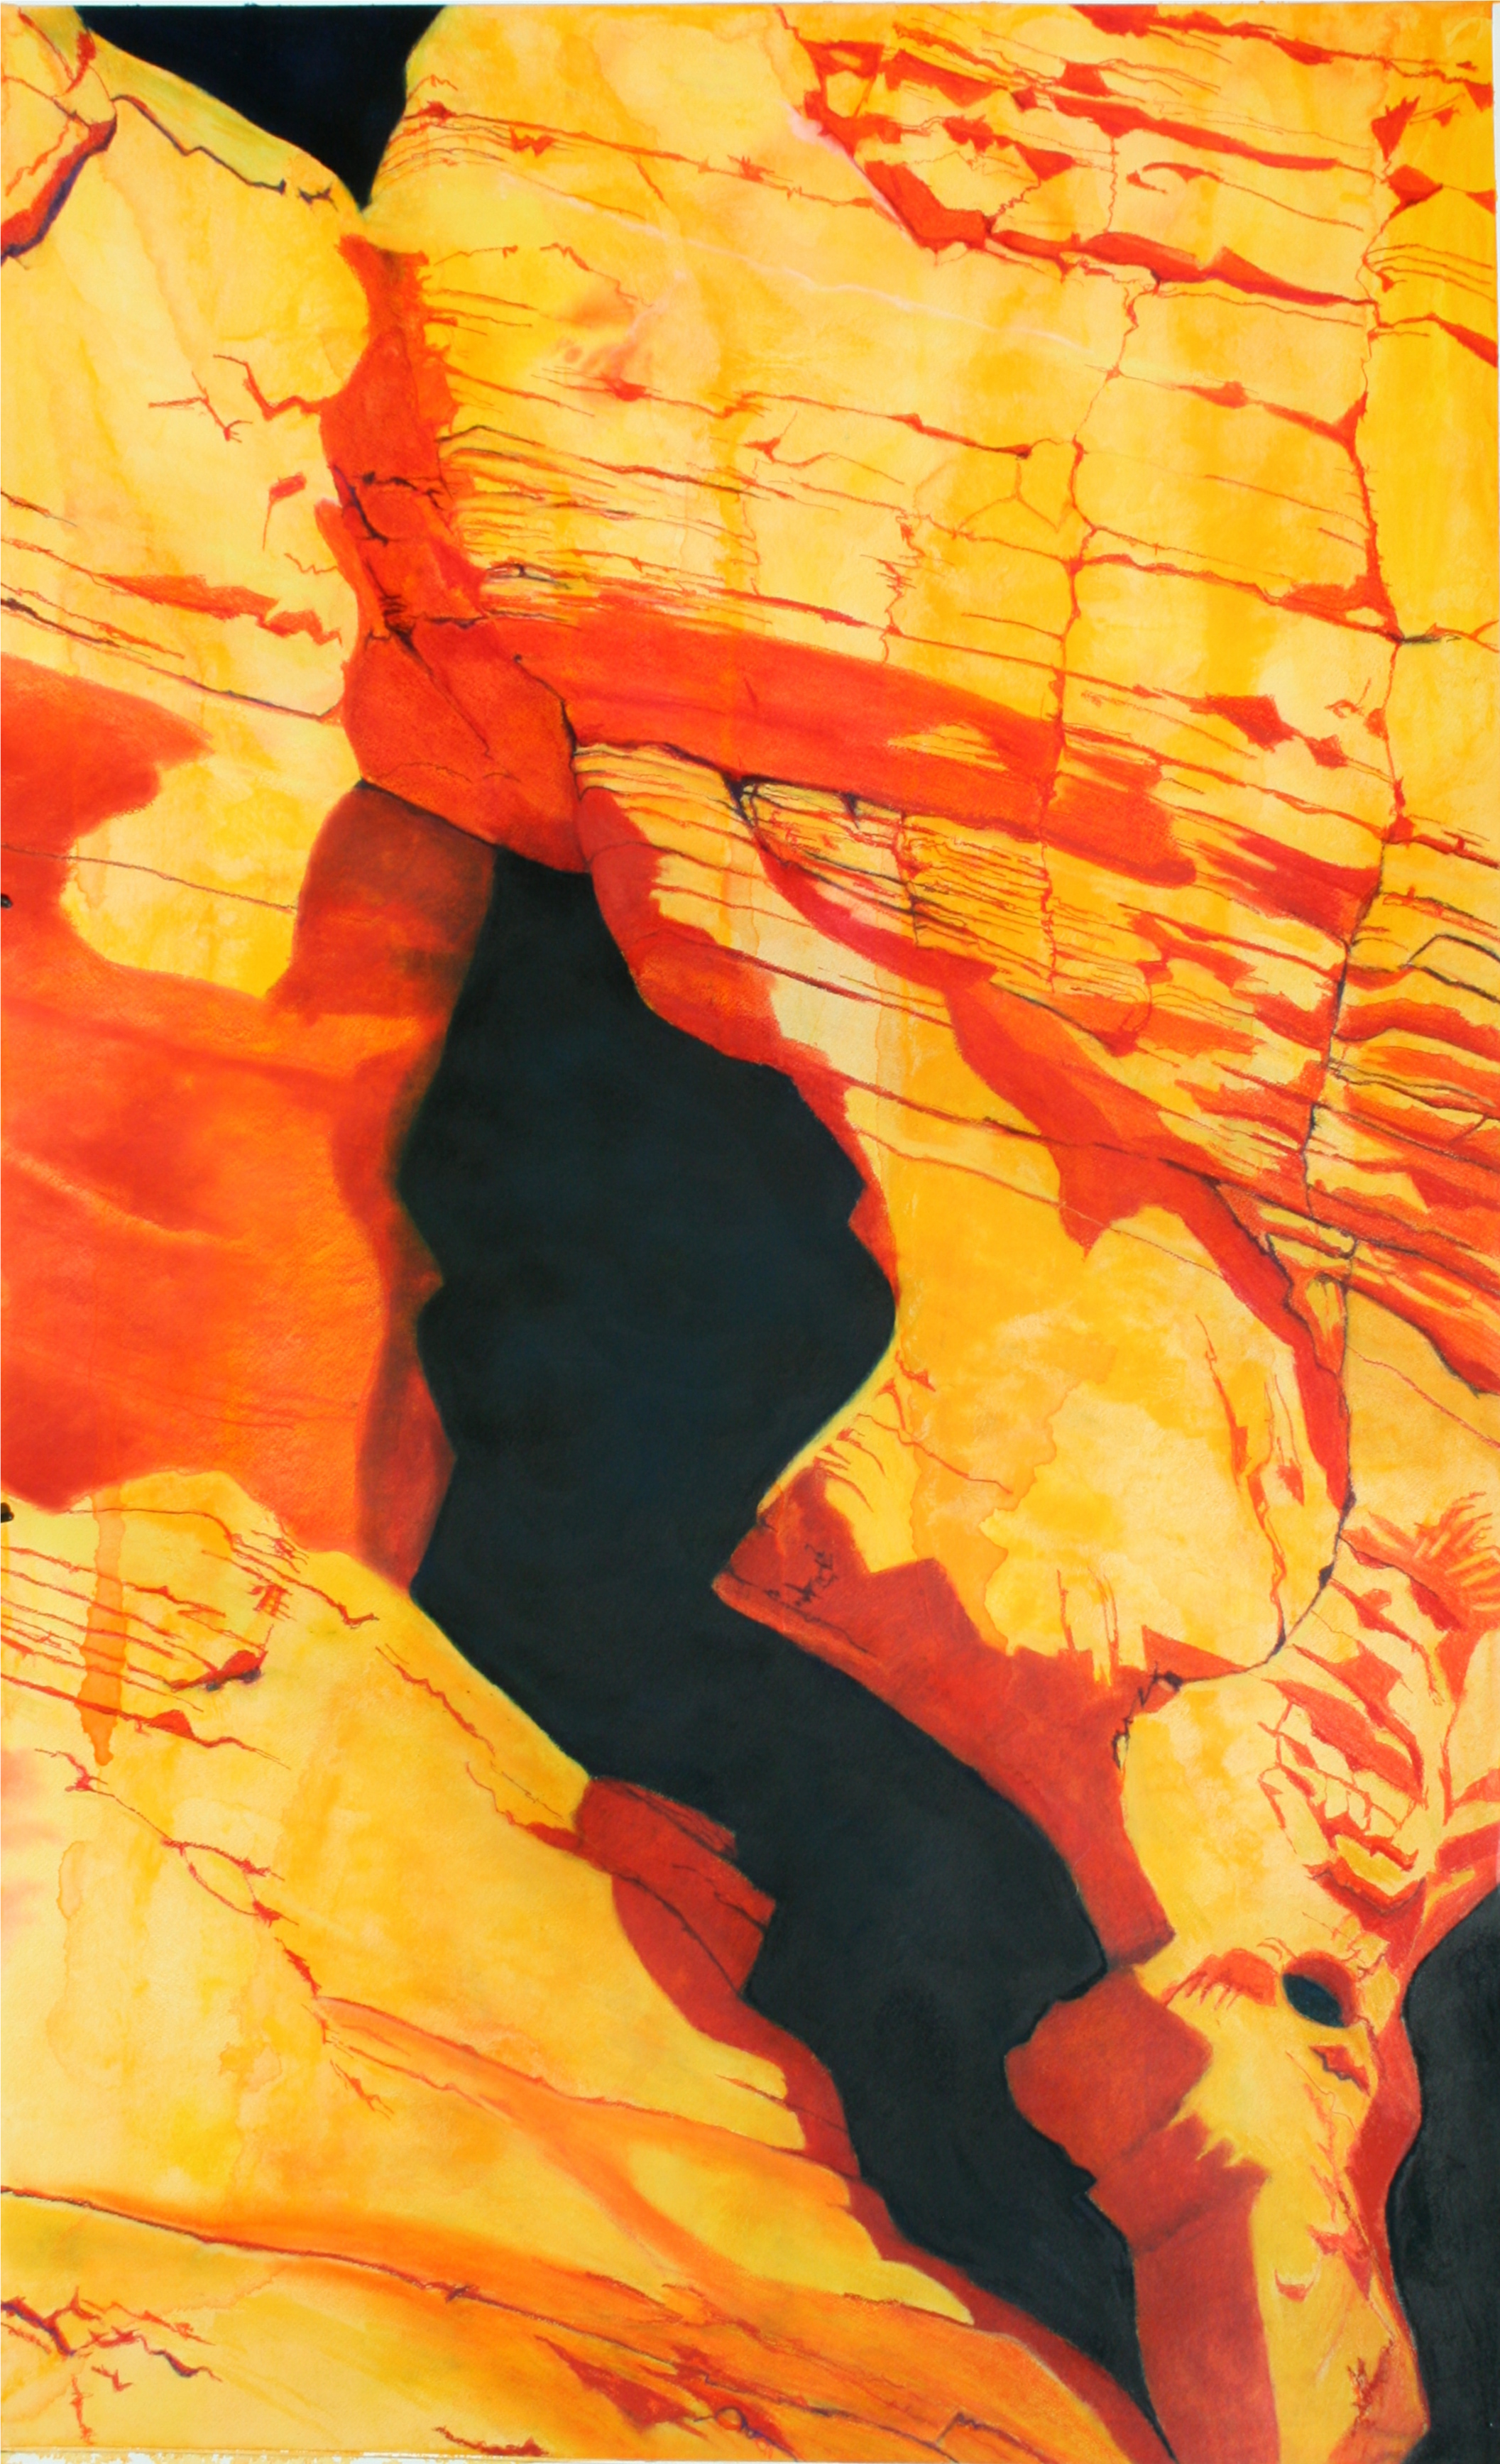 Valley of Fire 5 artwork by William Martin - art listed for sale on Artplode